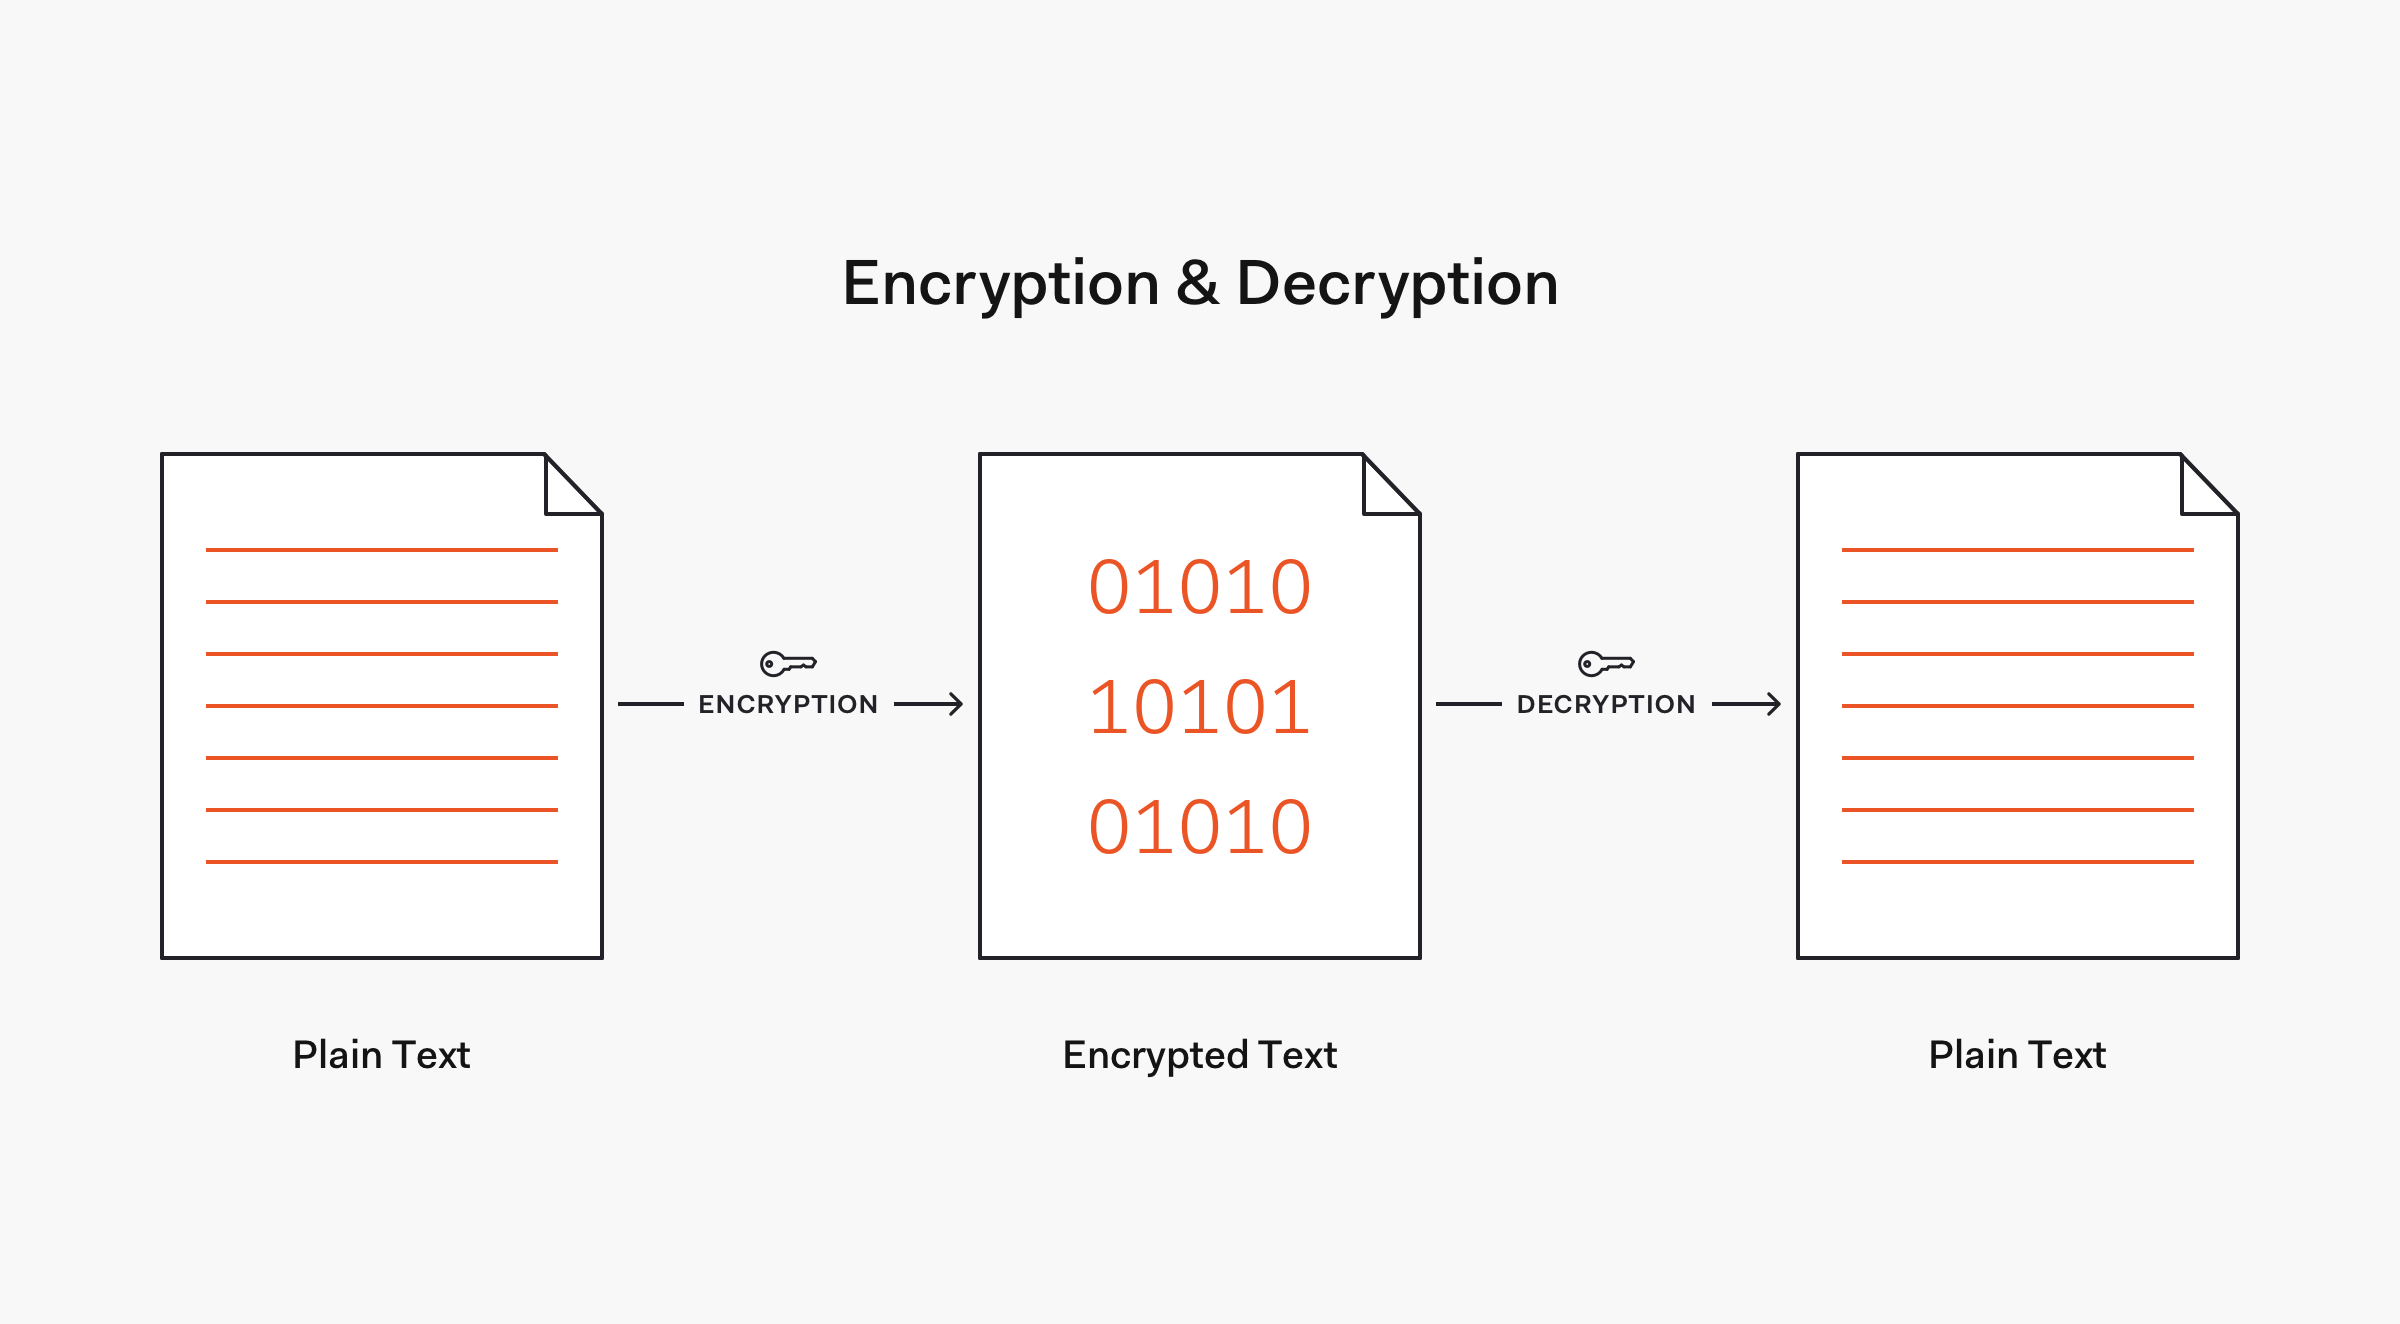 Encryption and decryption flow example - two-way